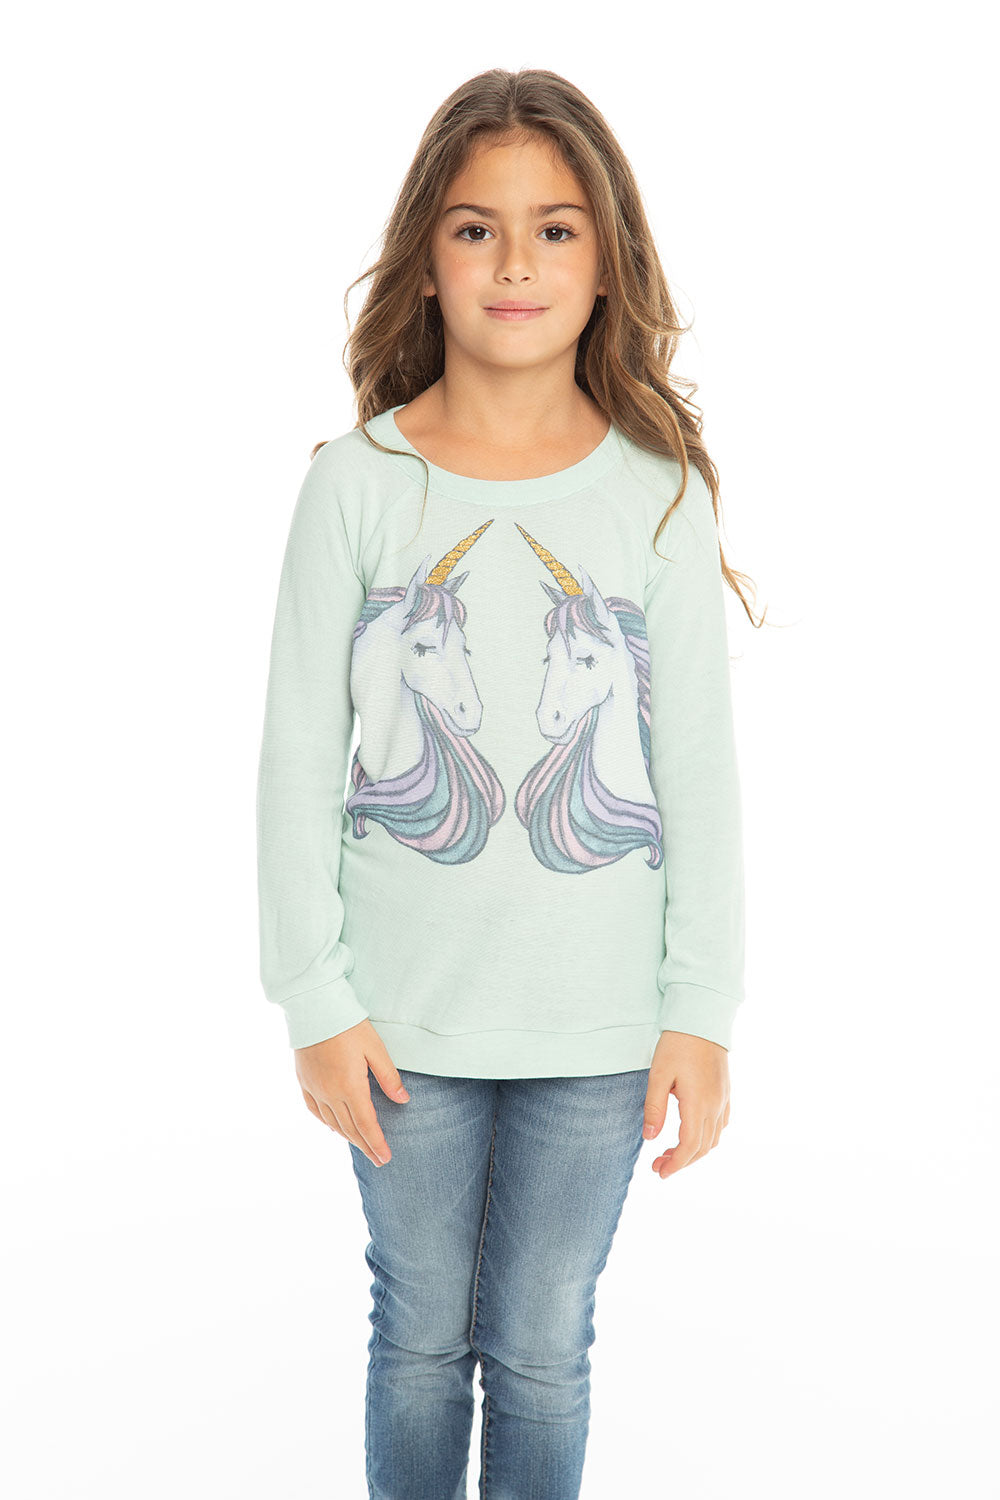 Unicorn Dreams, Girls, chaserbrand.com,chaser clothing,chaser apparel,chaser los angeles